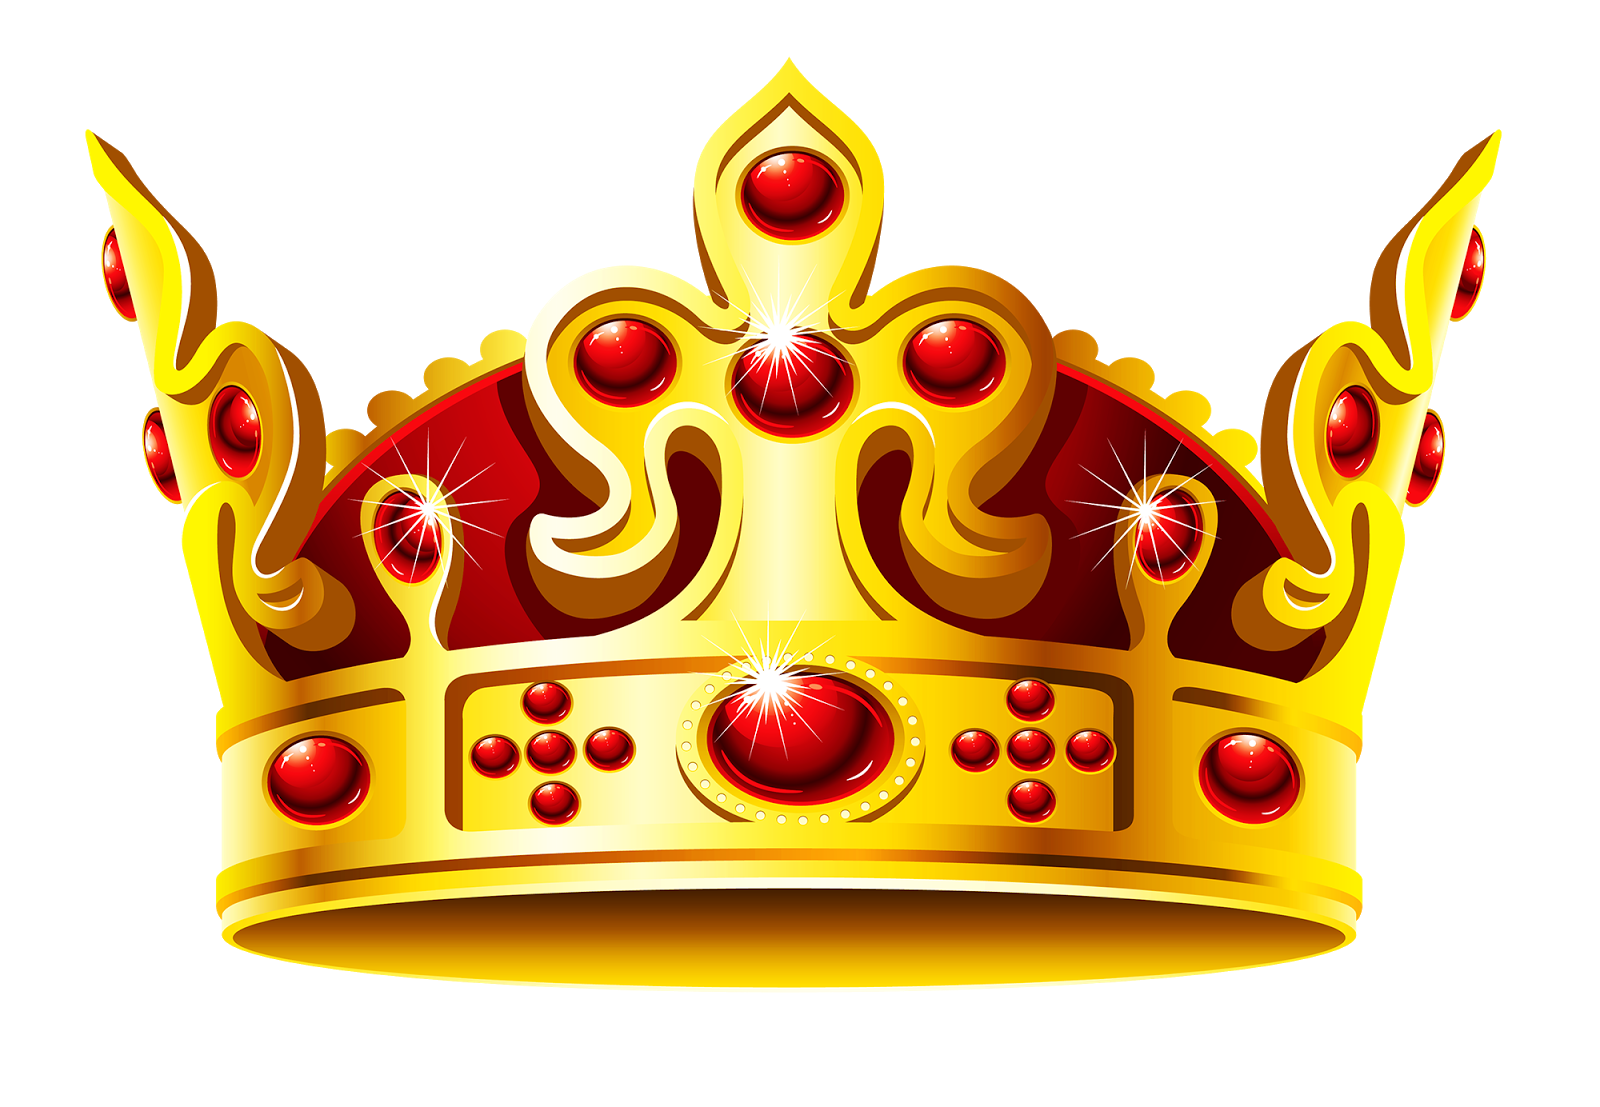 Sparkling gold crown clipart clip library stock Crown Clipart at GetDrawings.com | Free for personal use Crown ... clip library stock